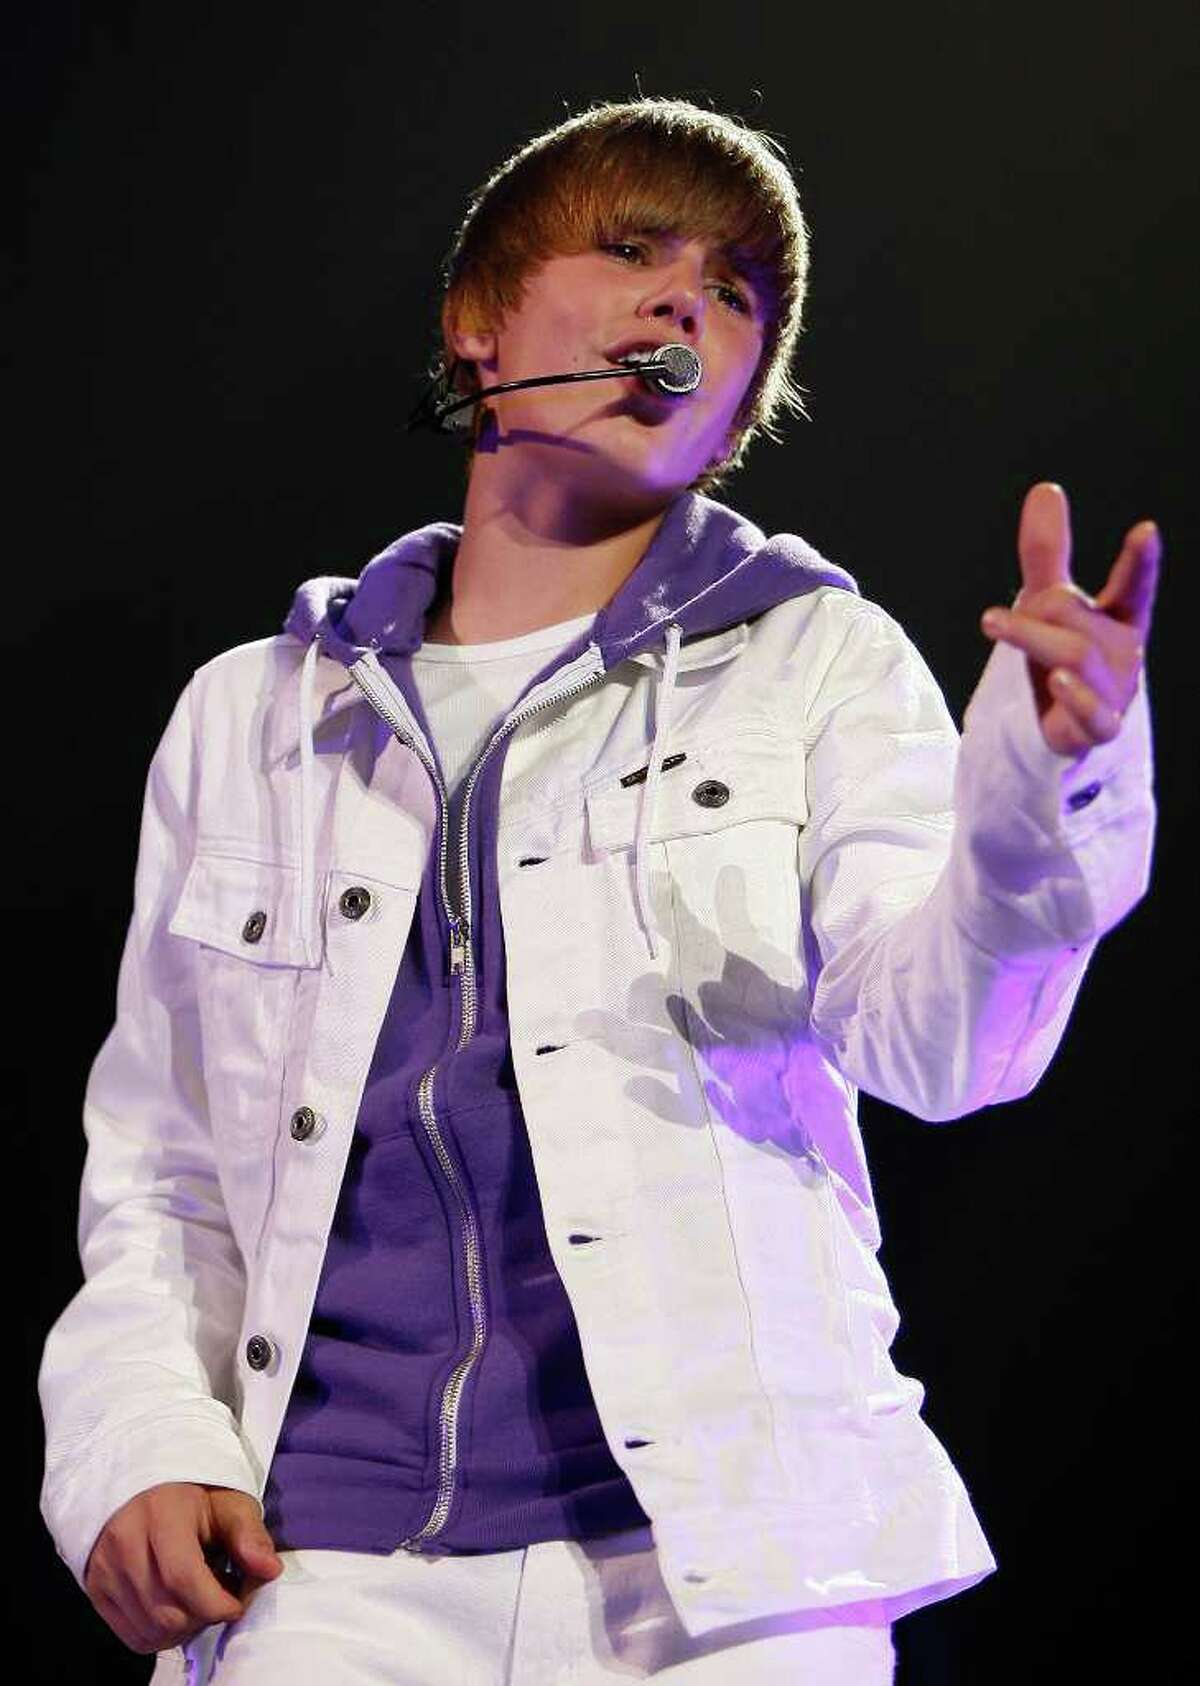 Justin Bieber performs 7:30 p.m. Wednesday at Times Union Center. Here, in this June 24, 2010 file photo, Bieber performs in Trenton, N.J. (AP Photo/Tim Larsen, file)